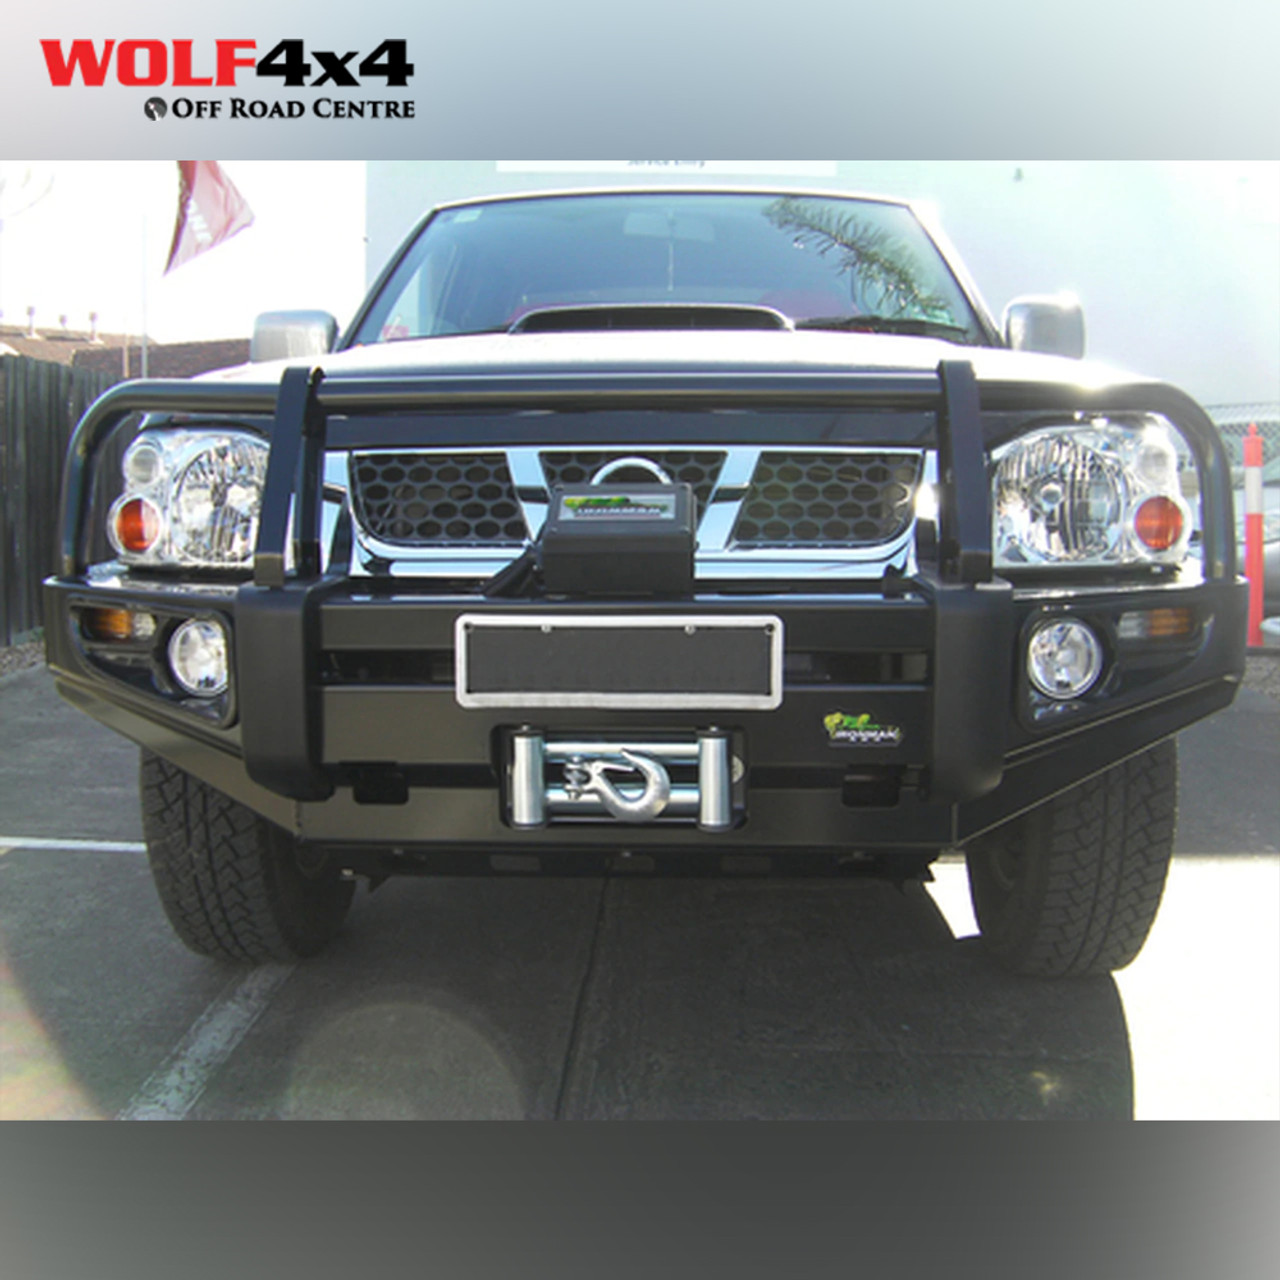 Ironman 4x4 Deluxe Commercial Bull Bar Nissan Navara D22 2002 2014 Wolf 4x4 North Lakes